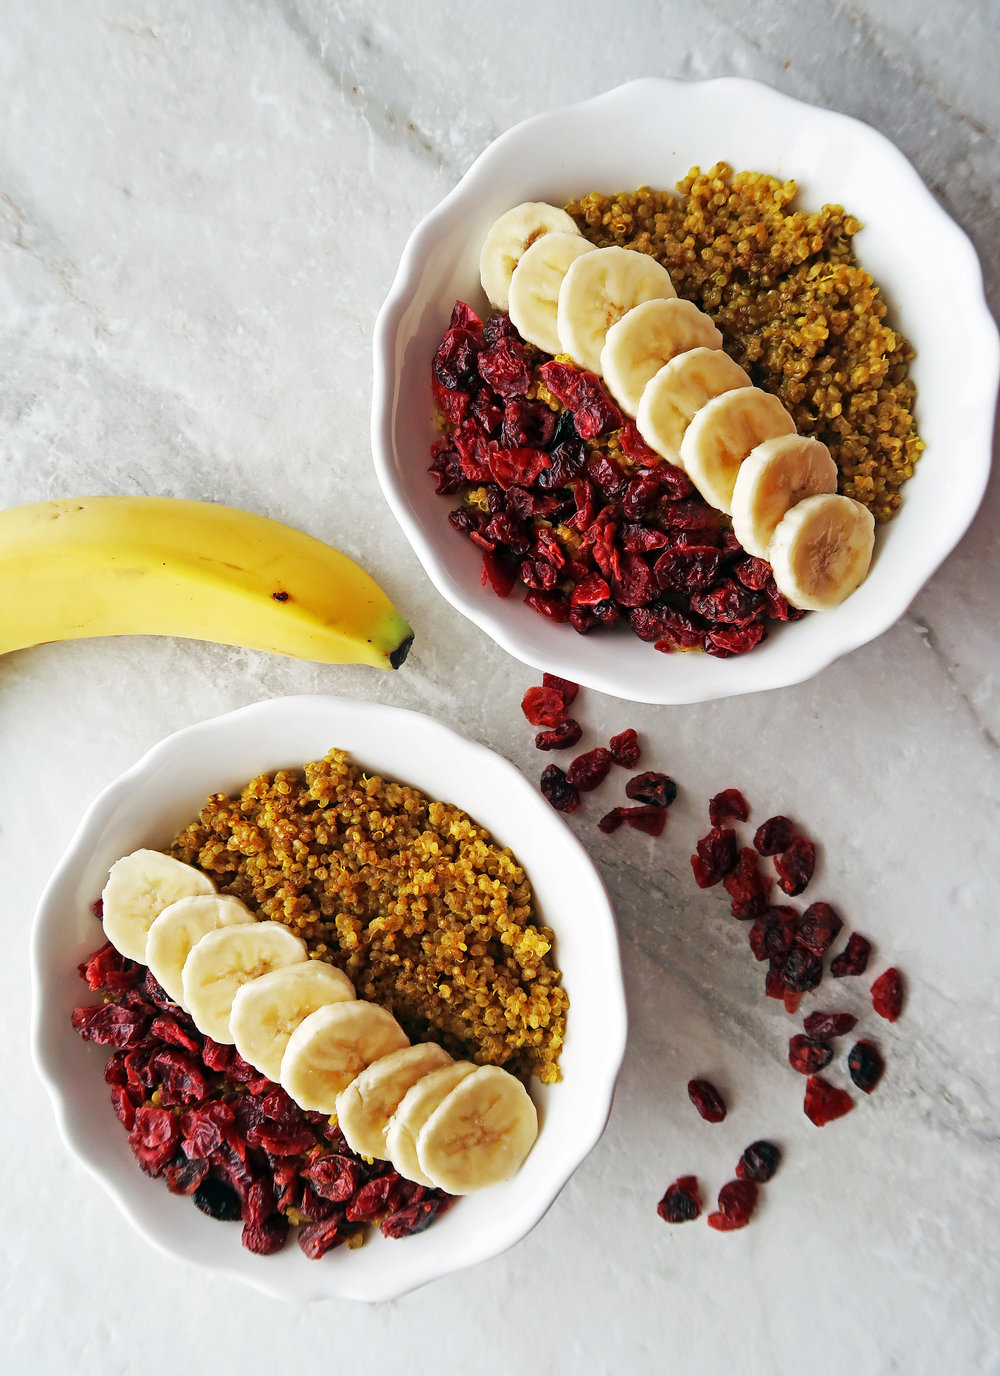 Two Golden Milk (Turmeric Latte) Quinoa Bowls with dried cranberries and banana slices.